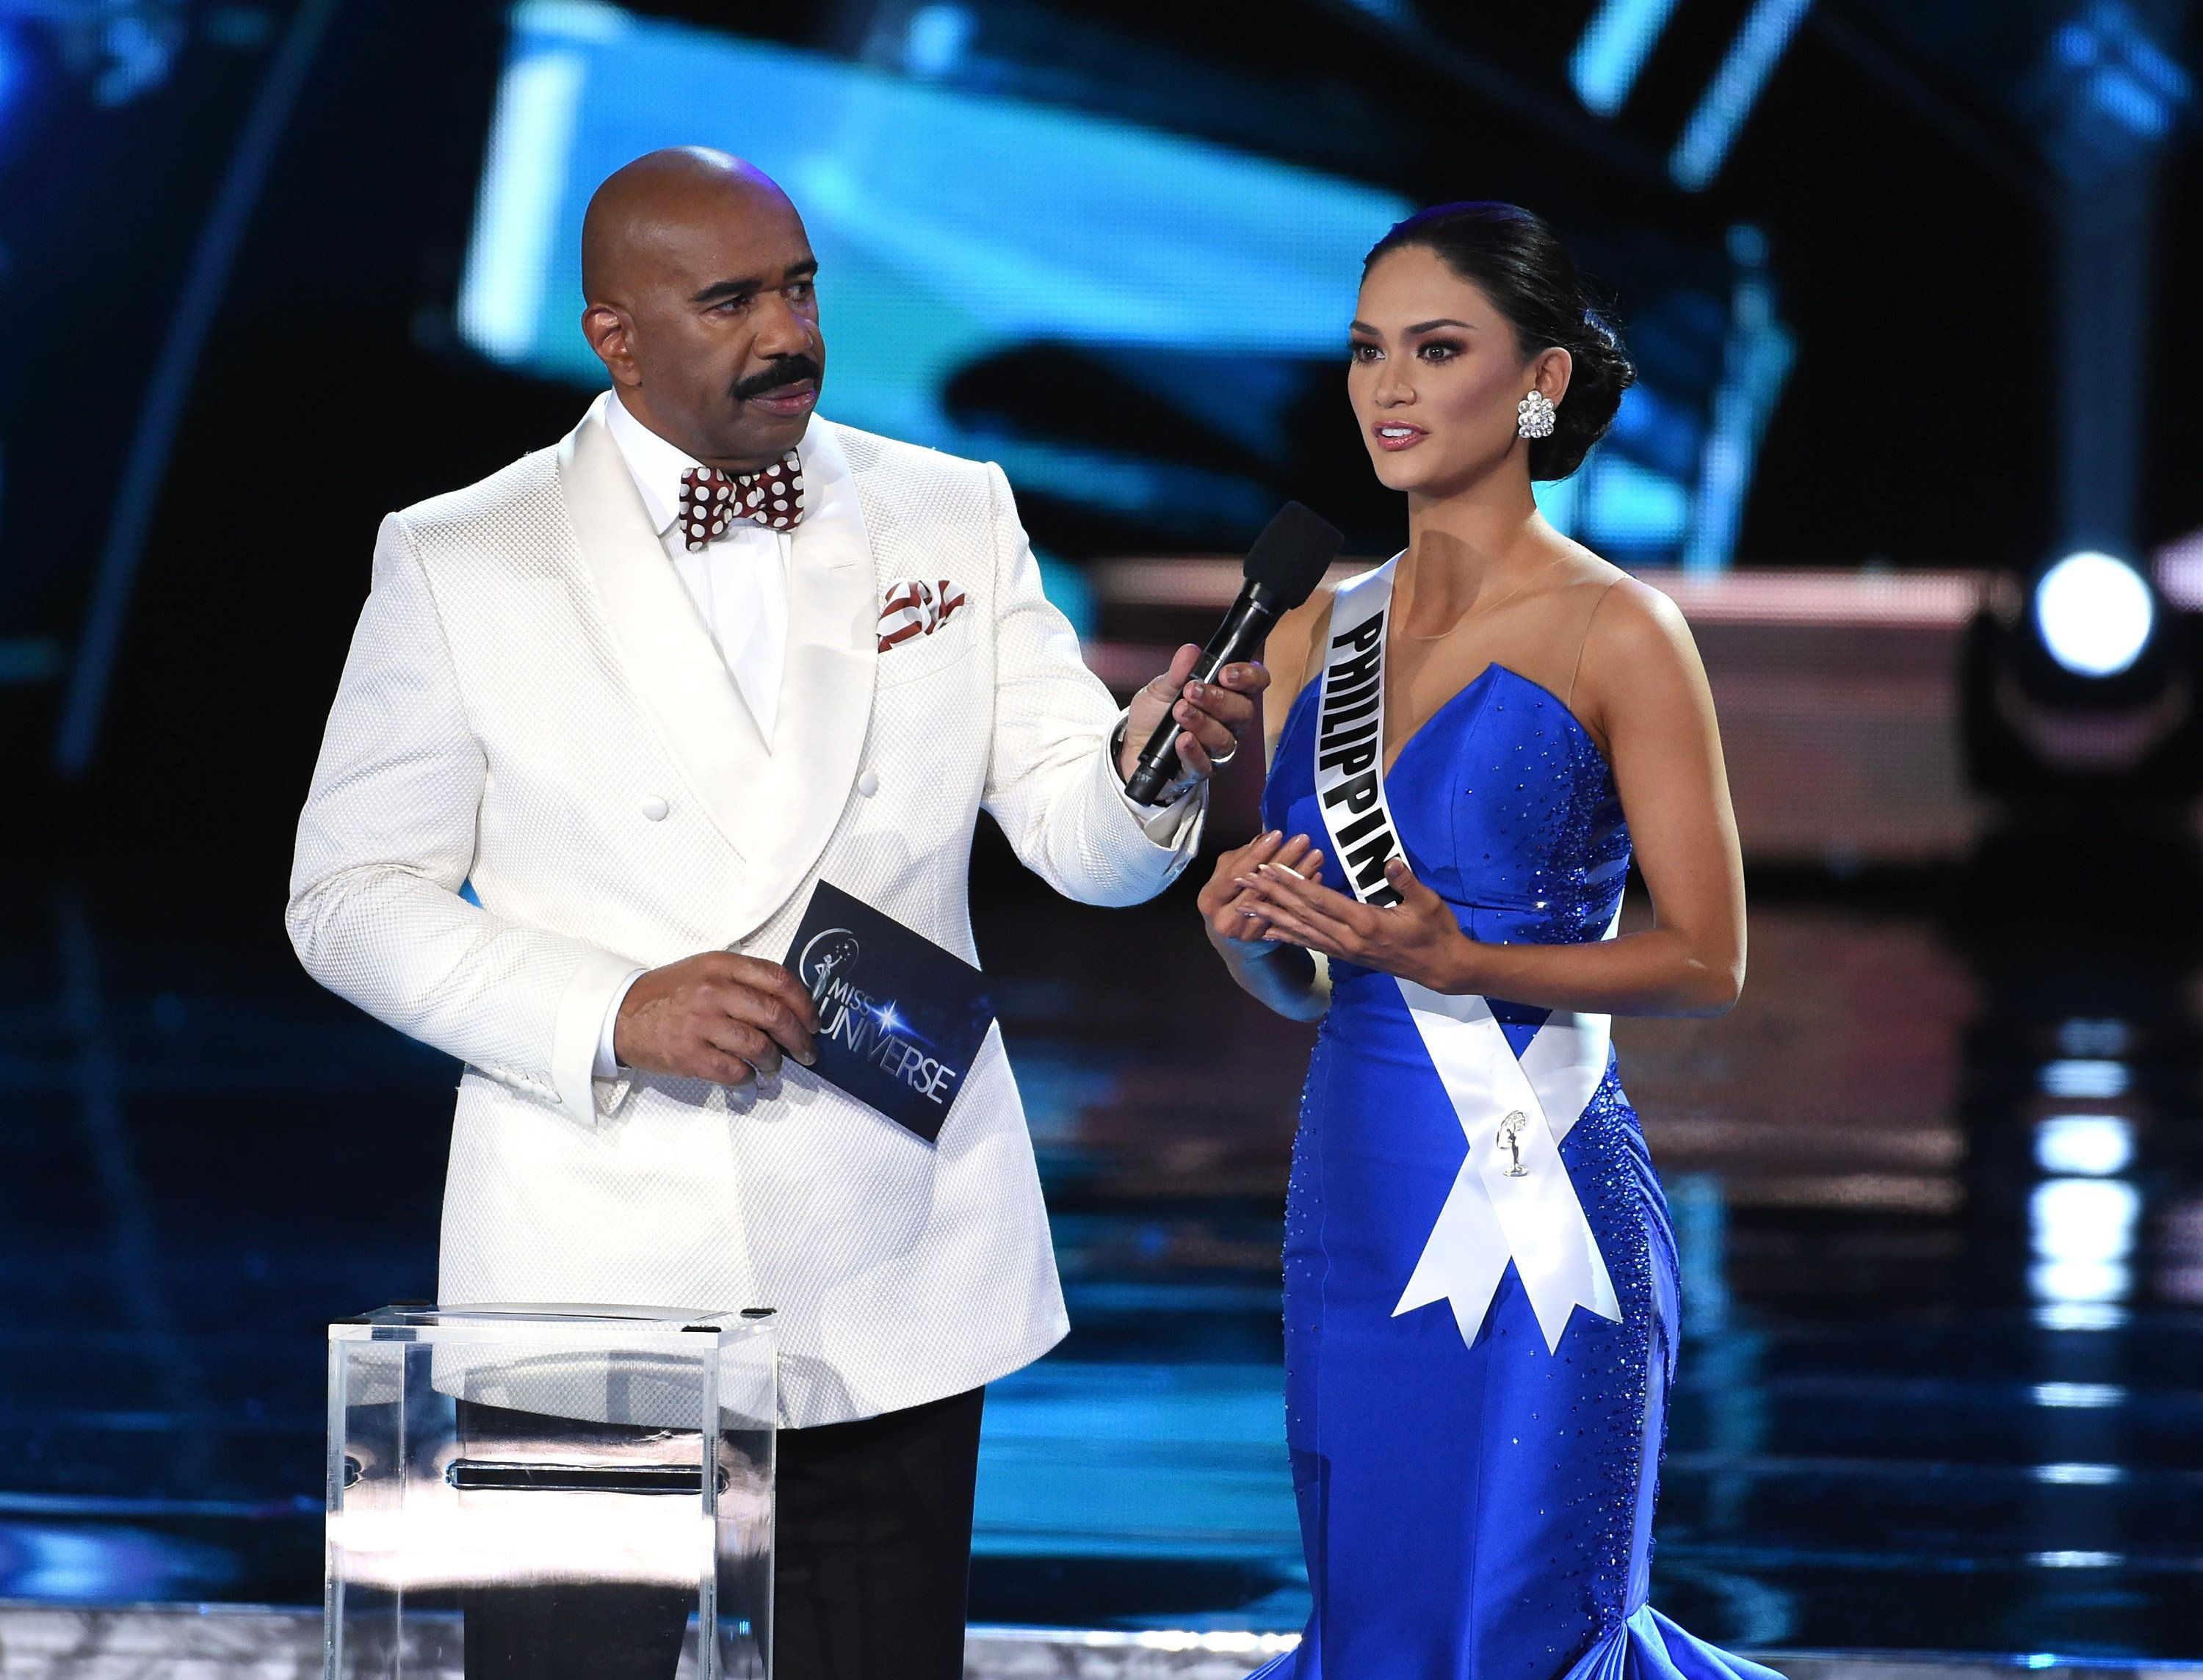 LAS VEGAS, NV - DECEMBER 20:  Host Steve Harvey (L) listens as Miss Philippines 2015, Pia Alonzo Wurtzbach, answers a question during the interview portion of the 2015 Miss Universe Pageant at The Axis at Planet Hollywood Resort & Casino on December 20, 2015 in Las Vegas, Nevada. Wurtzbach went on to be crowned the new Miss Universe.  (Photo by Ethan Miller/Getty Images)